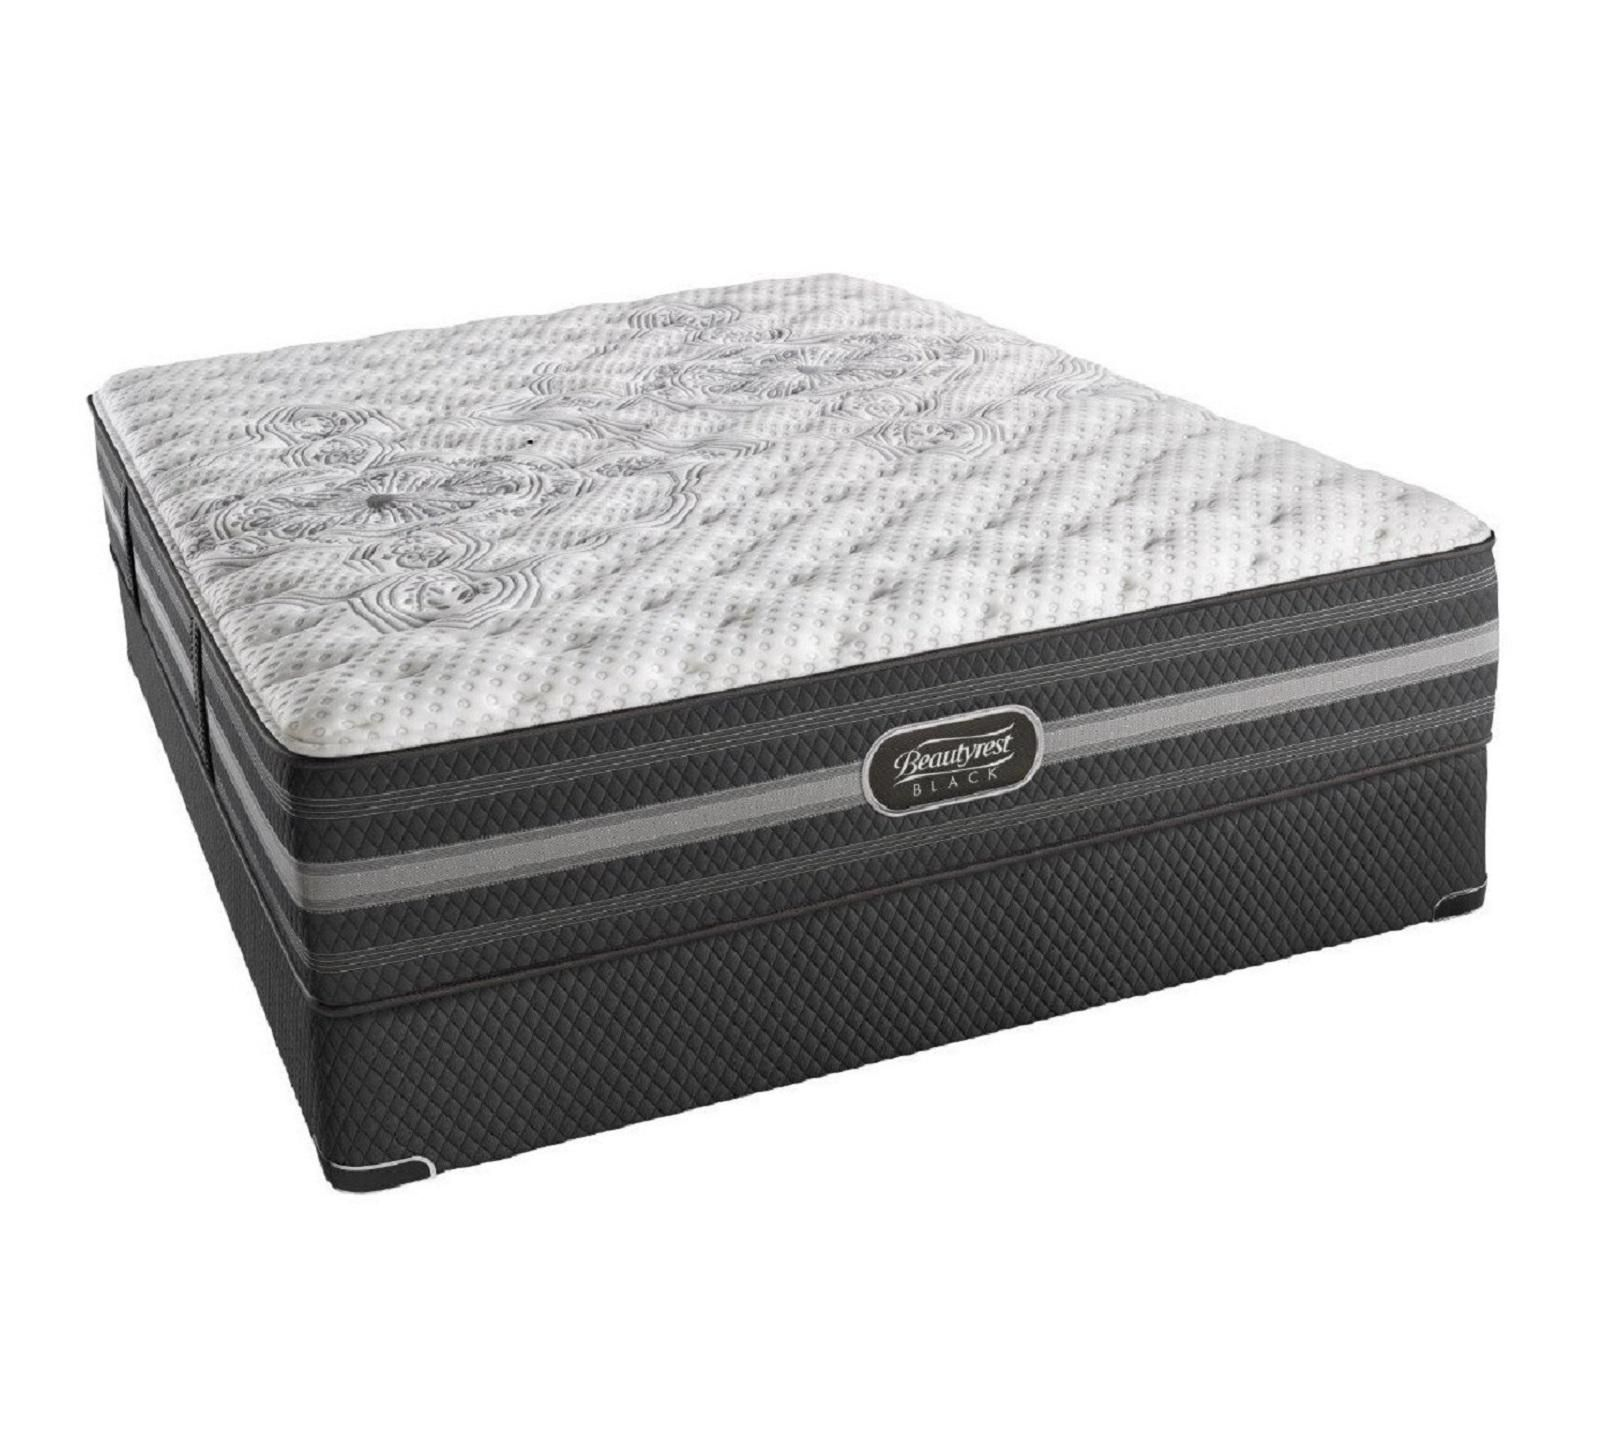 95 Reference Of Mattress Firm Black Friday Purple Mattress In 2020